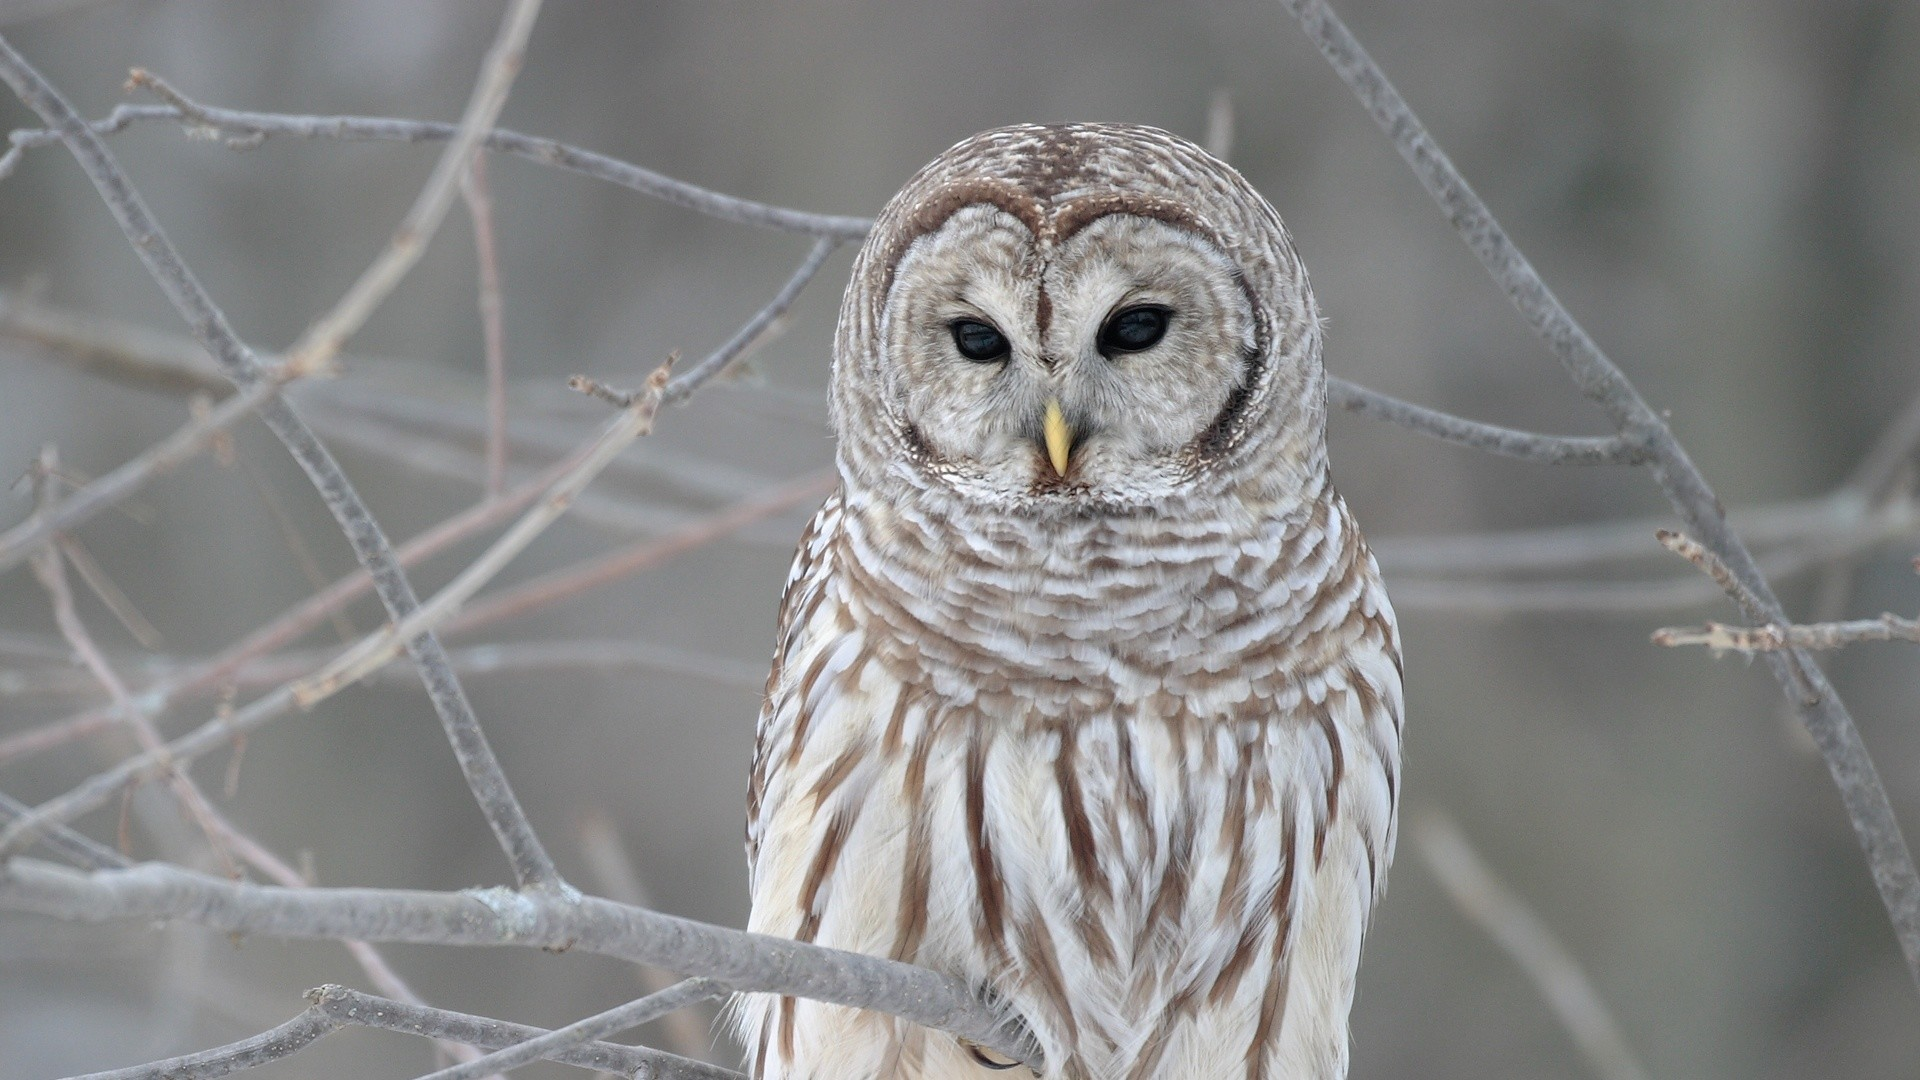 Cute & Sweet Owl Wallpapers HD images